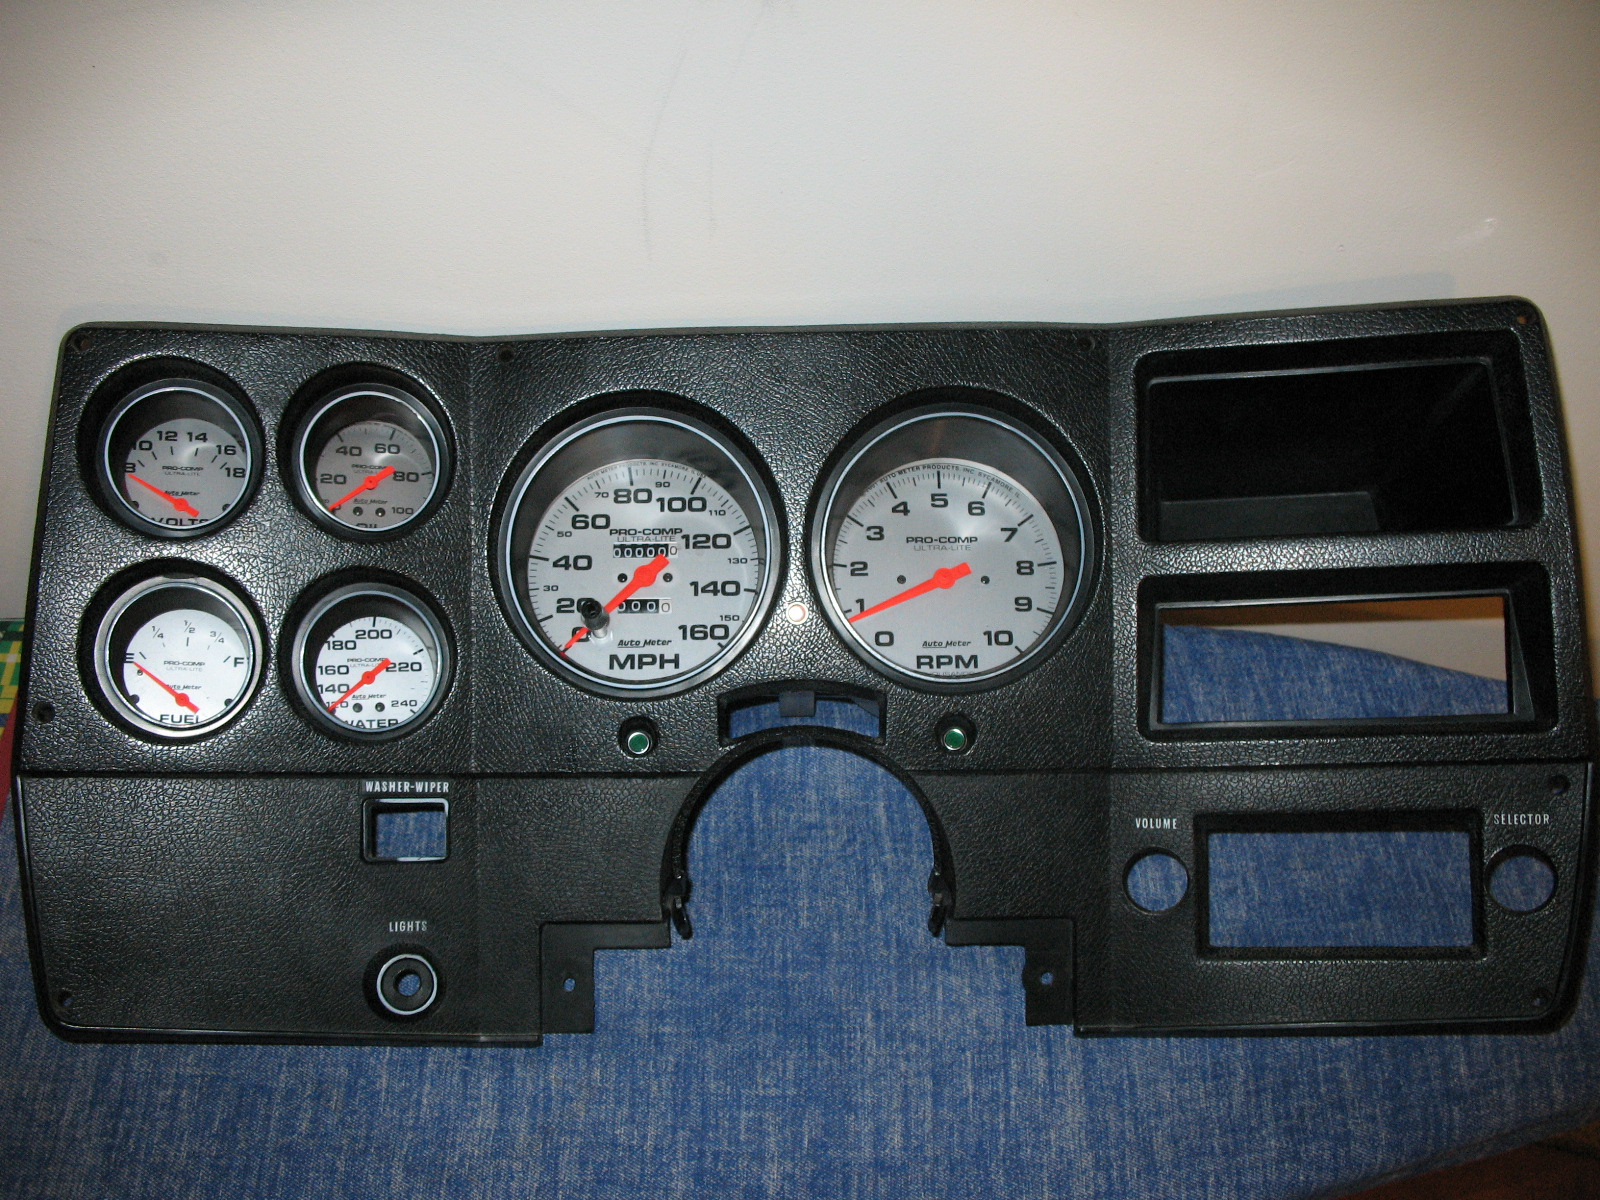 72 chevy c10 instrument cluster wiring diagram 1951 chevy